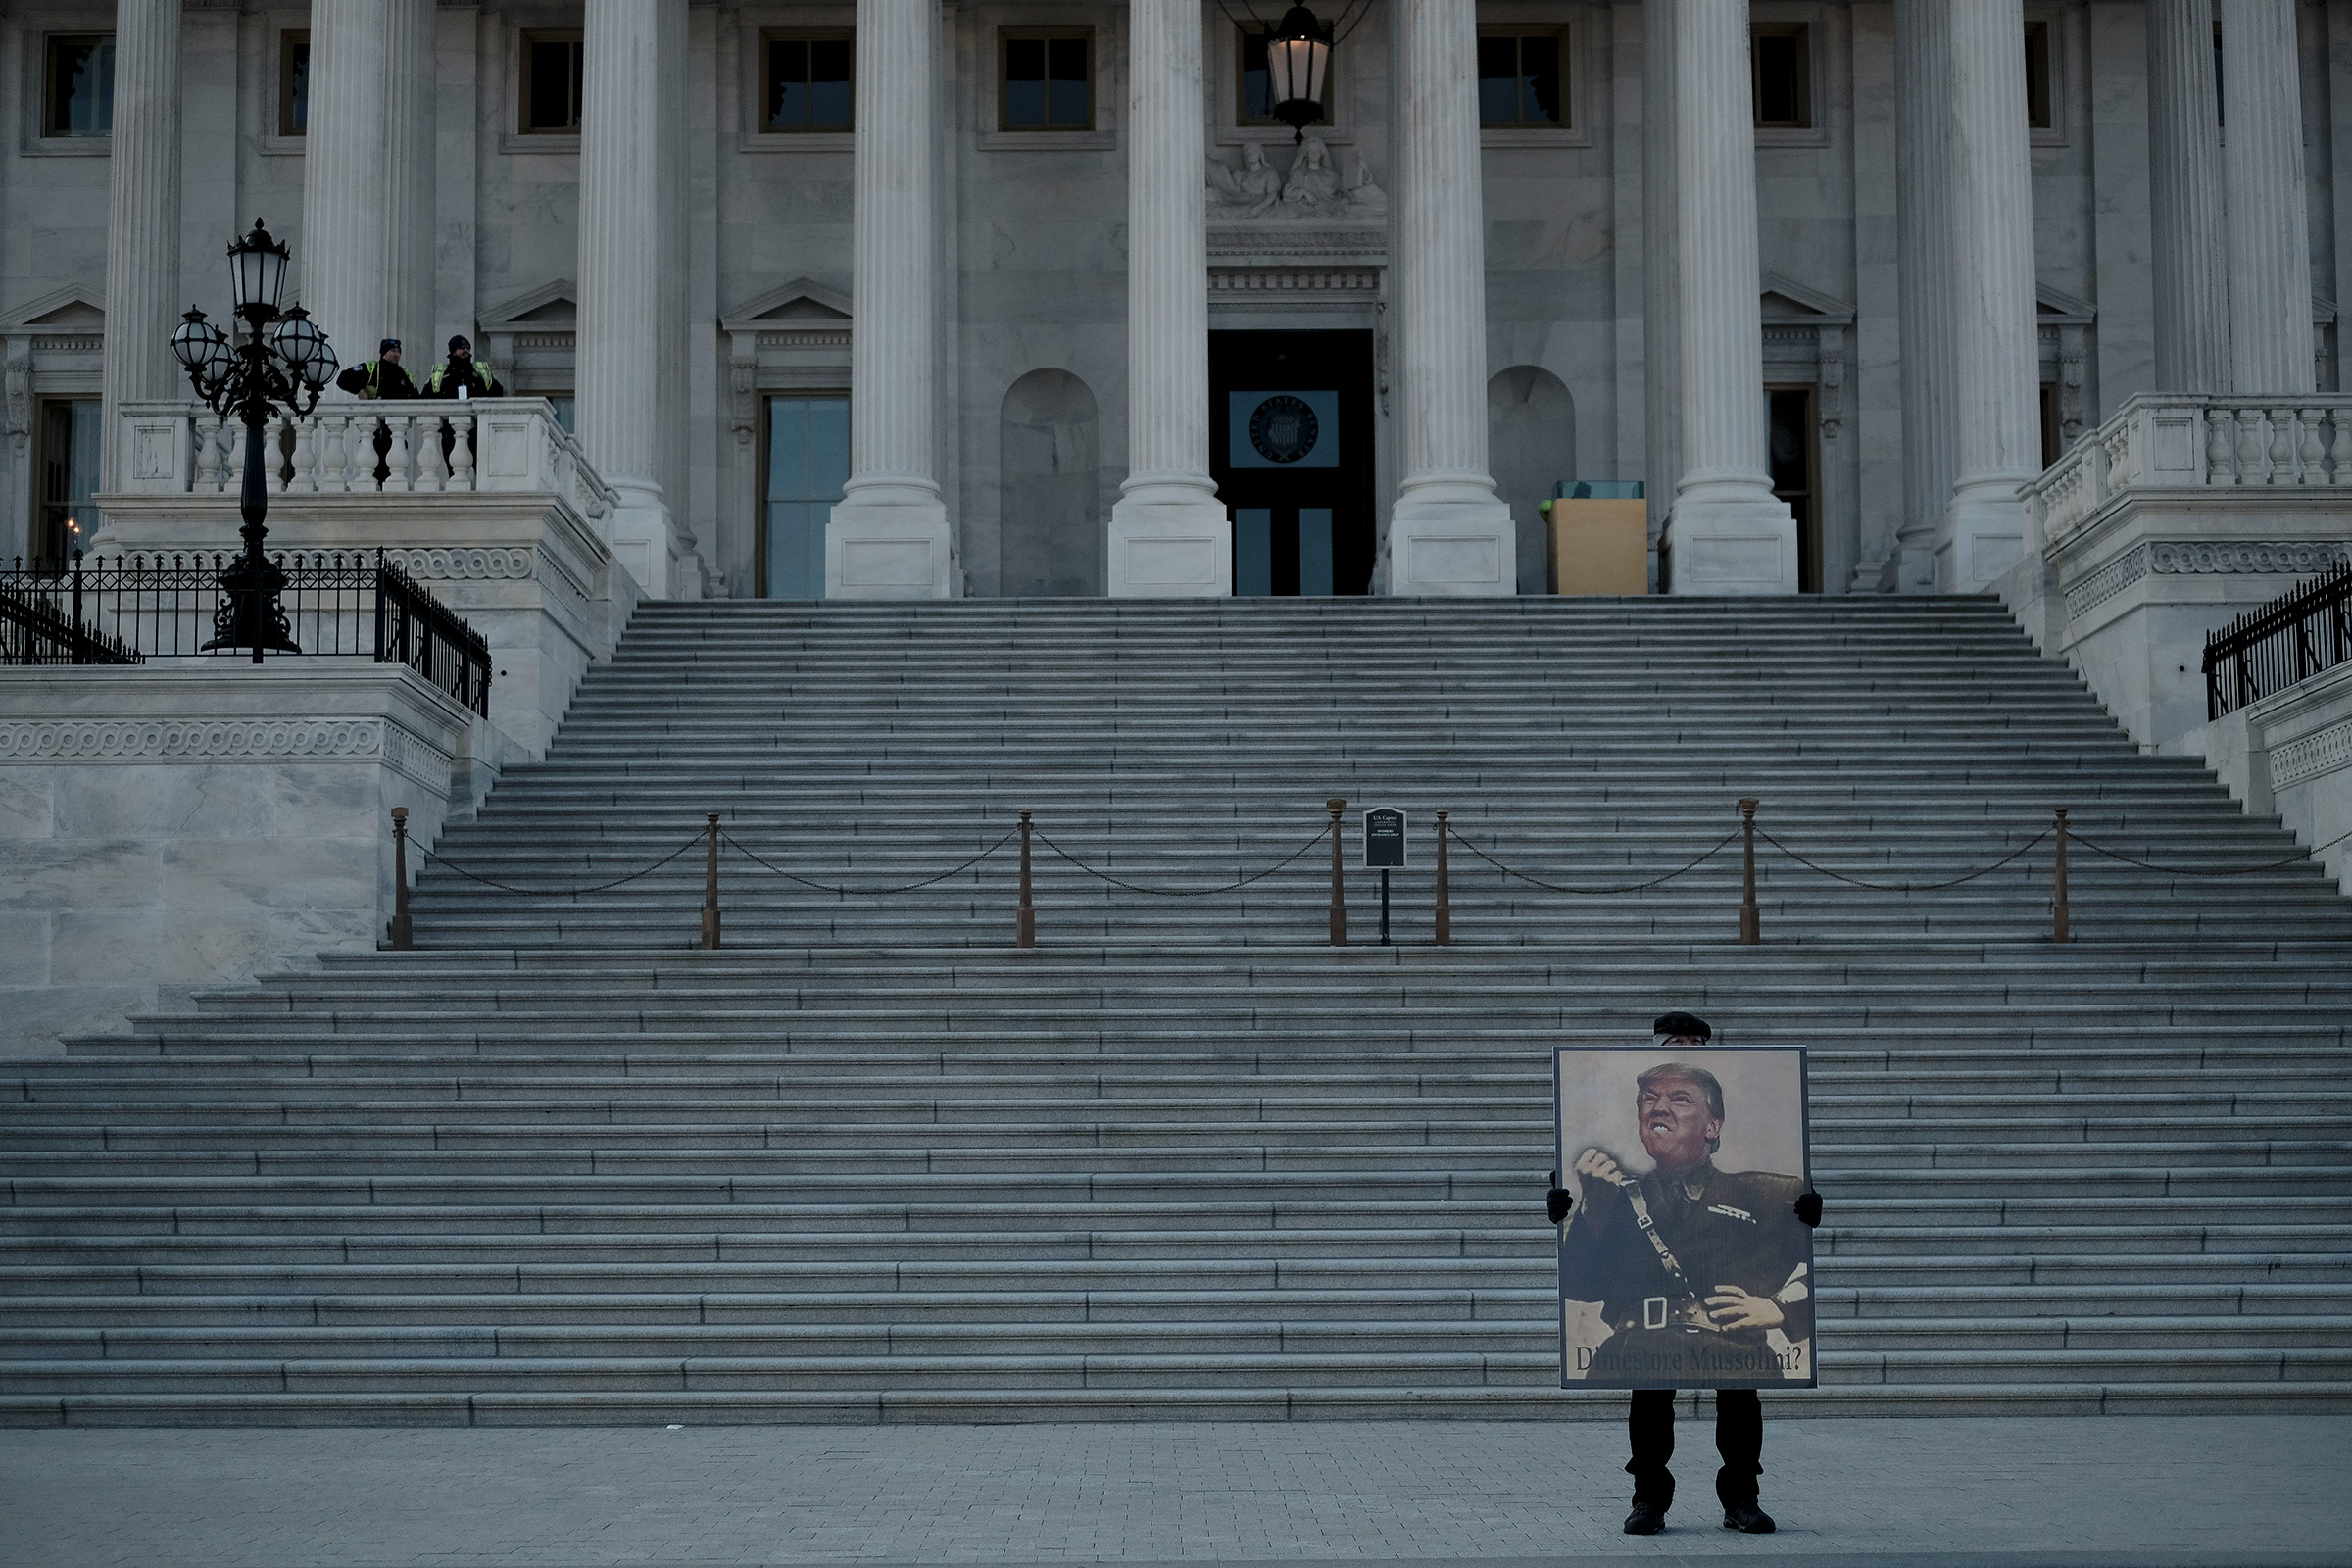 A protestor demonstrates against President Donald Trump in front of the Capitol during the senate impeachment trial in Washington, D.C., on Jan. 29, 2020.